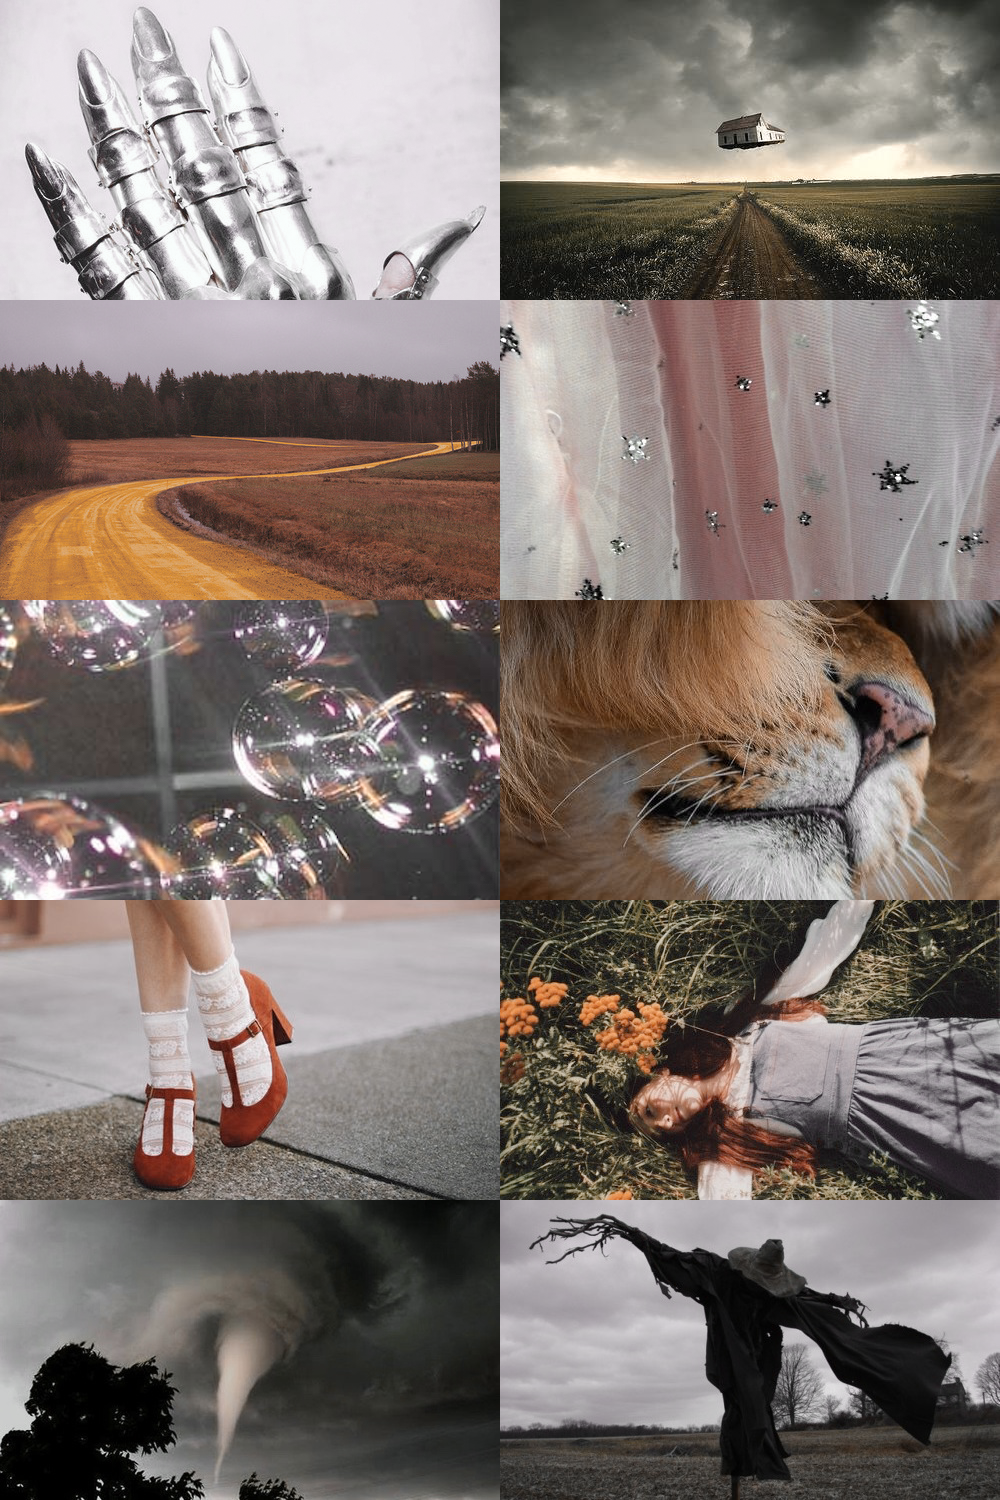 The Wizard Of Oz Aesthetic In 2020 Dorthy Wizard Of Oz